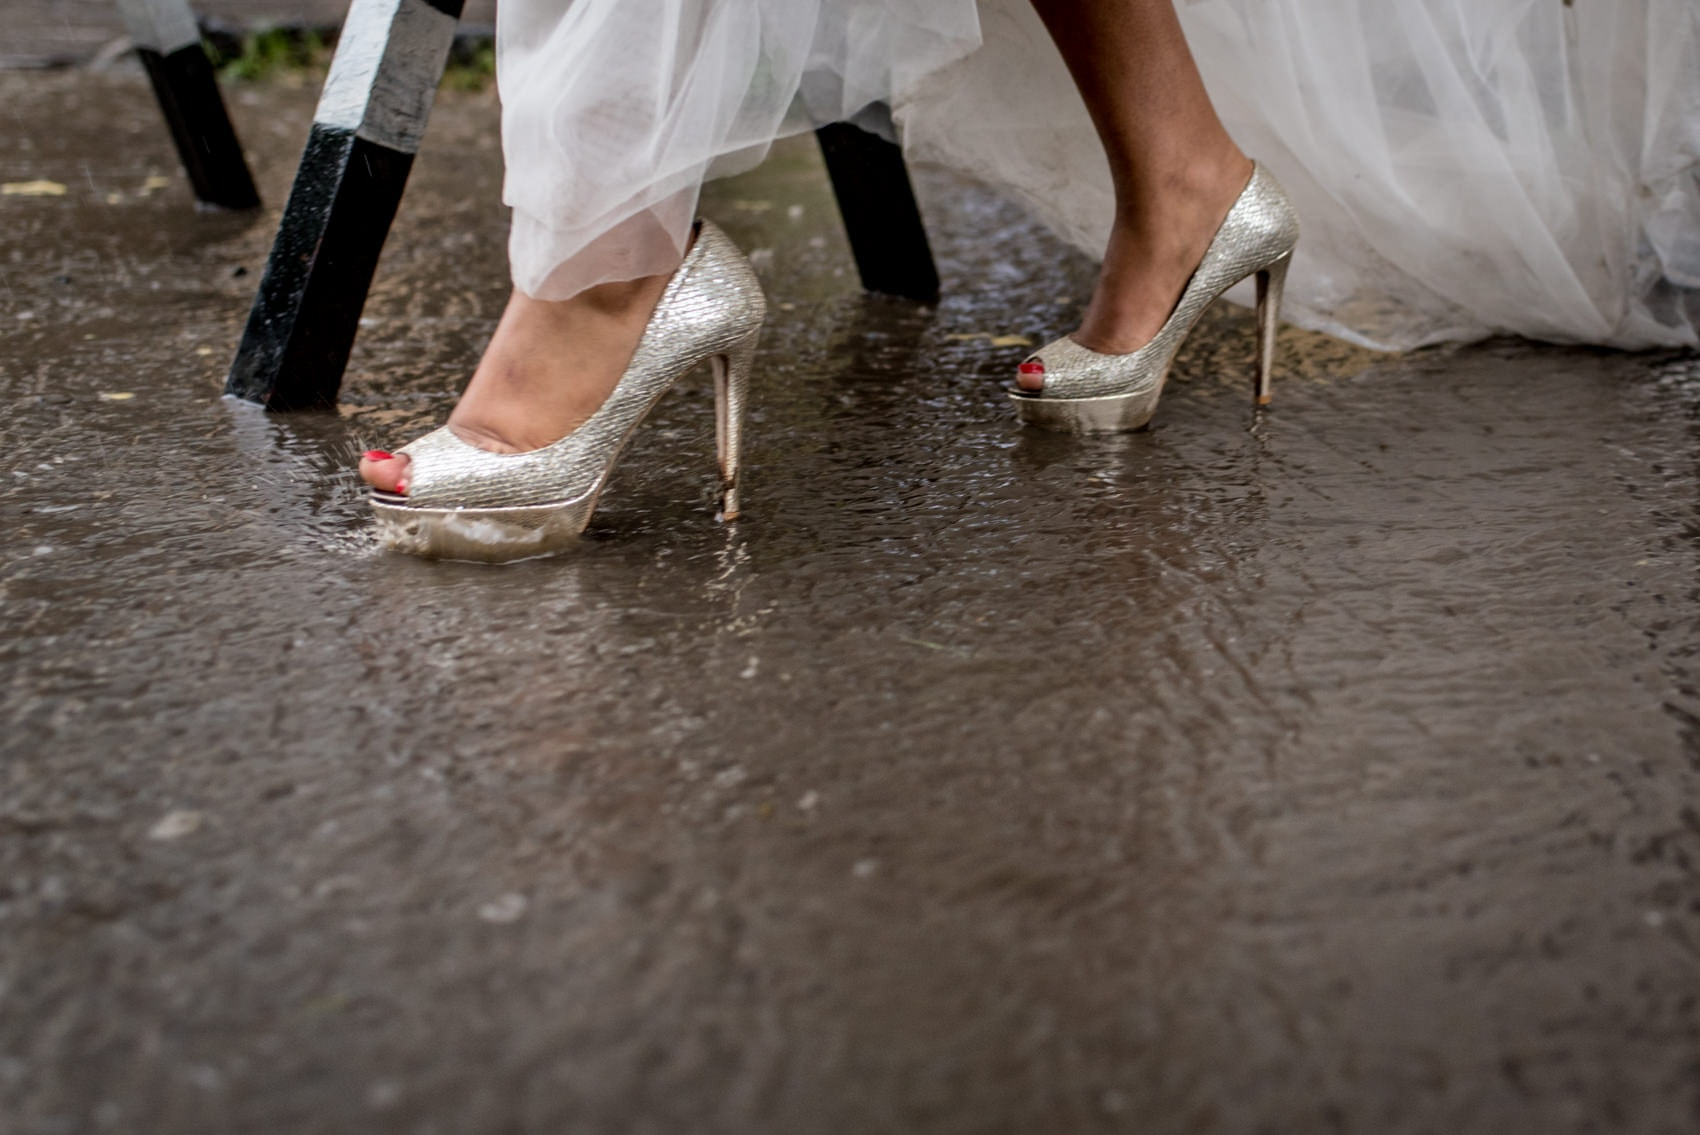 brides shoes in the rain in Addis Ababa, Ethiopia